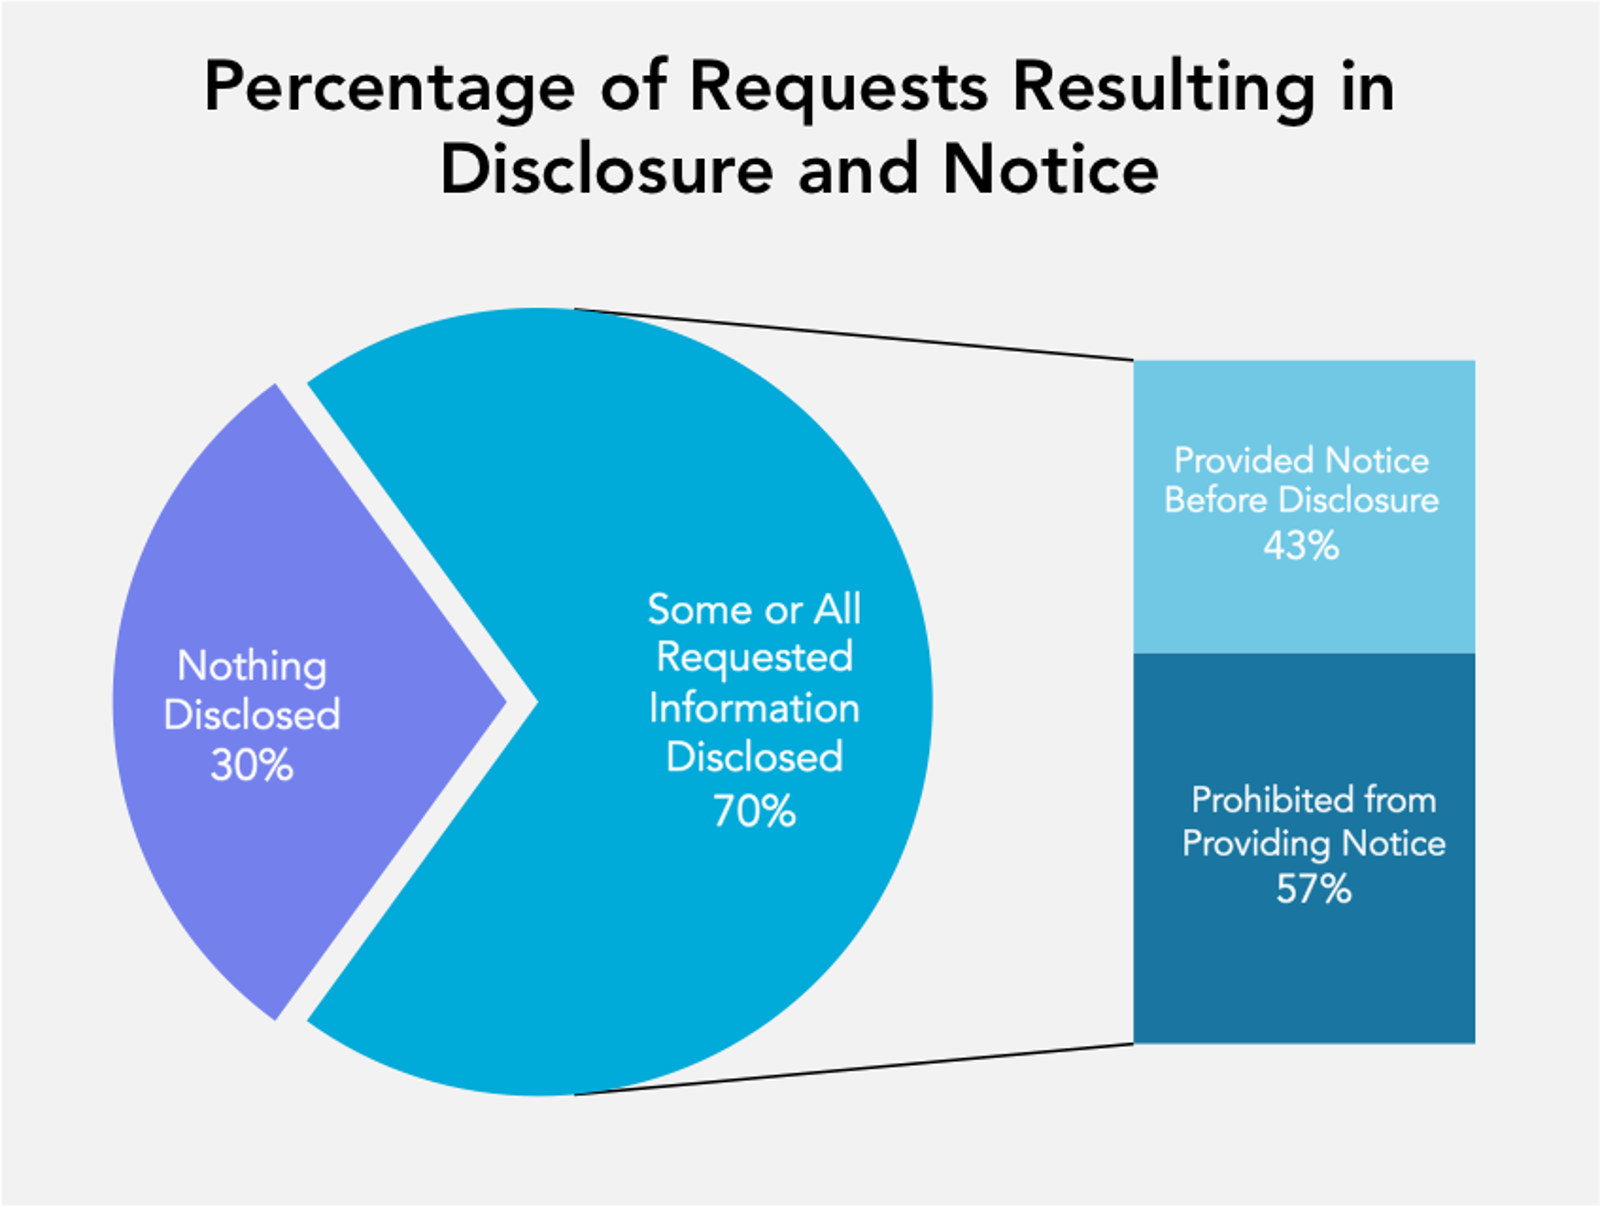 Percentage of Requests Resulting in Disclosure and Notice.   Nothing Disclosed: 30%.   Some or All Requested Information Disclosed: 70%.   Looking only at the cases where information was disclosed:   Provided Notice Before Disclosure: 43%.   Prohibited from Providing Notice: 57%.